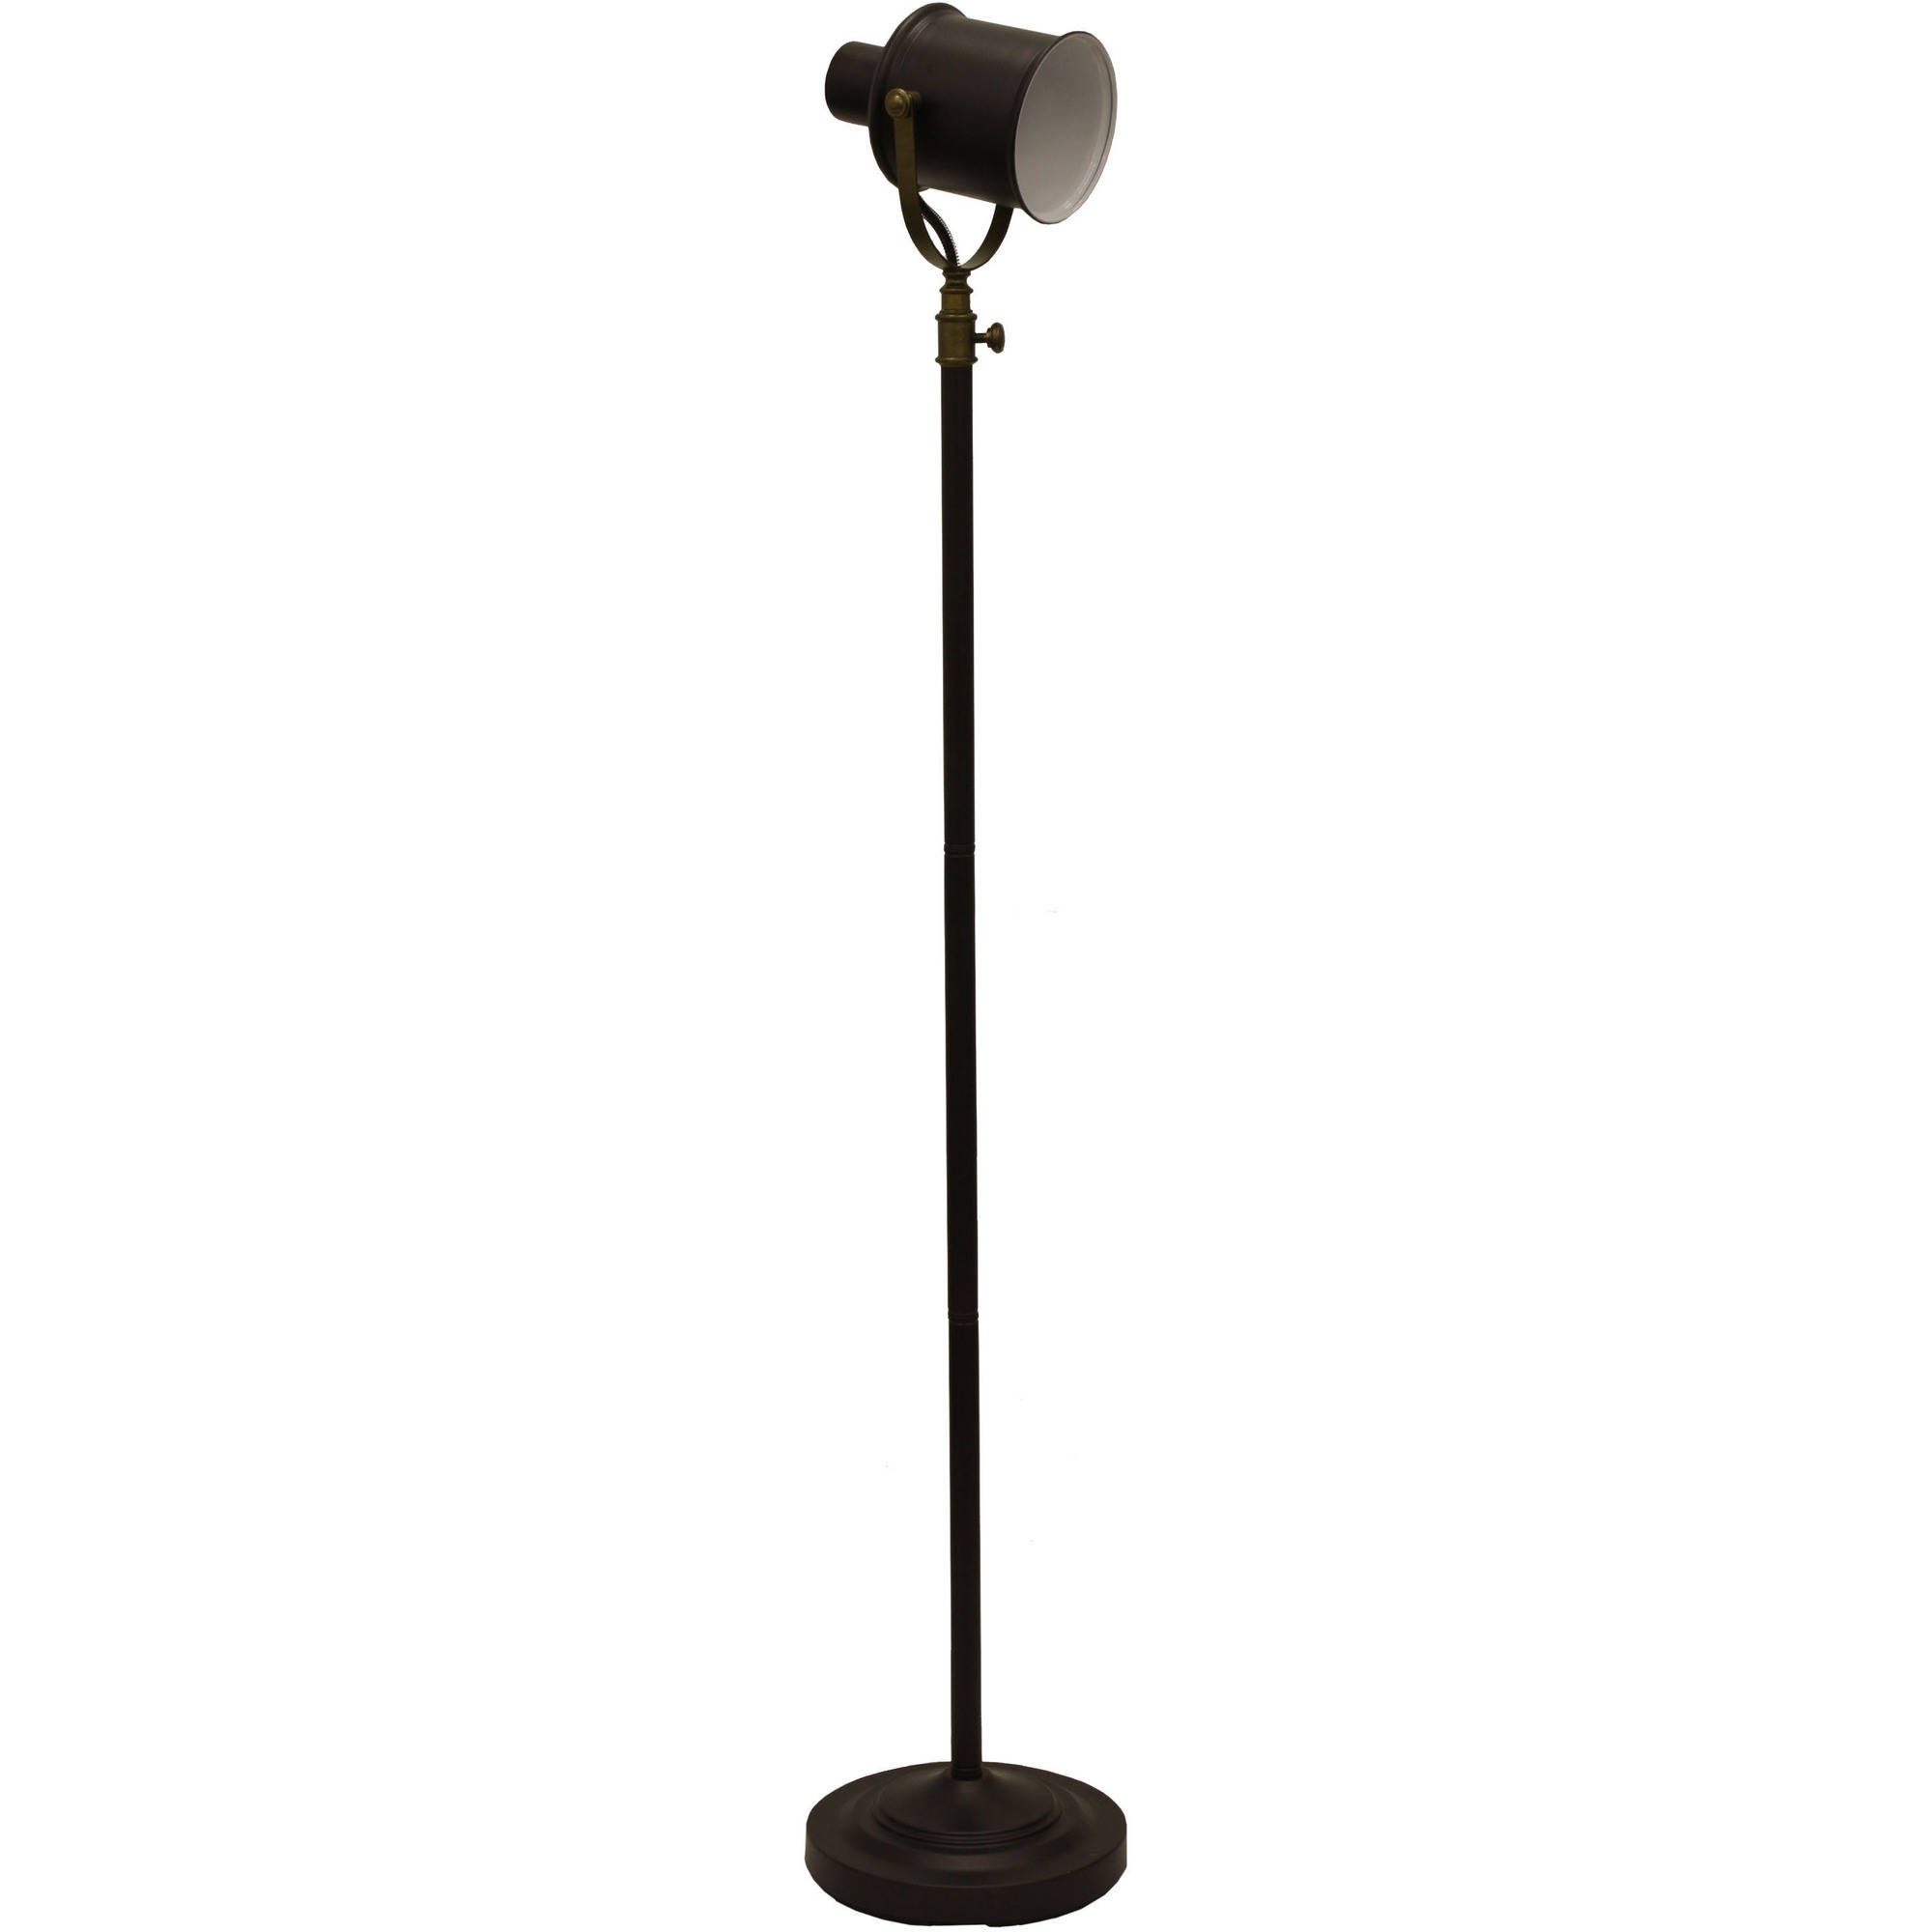 Better Homes and Gardens Two-Tone Spotlight Floor Lamp by JIMCO LAMP CO.